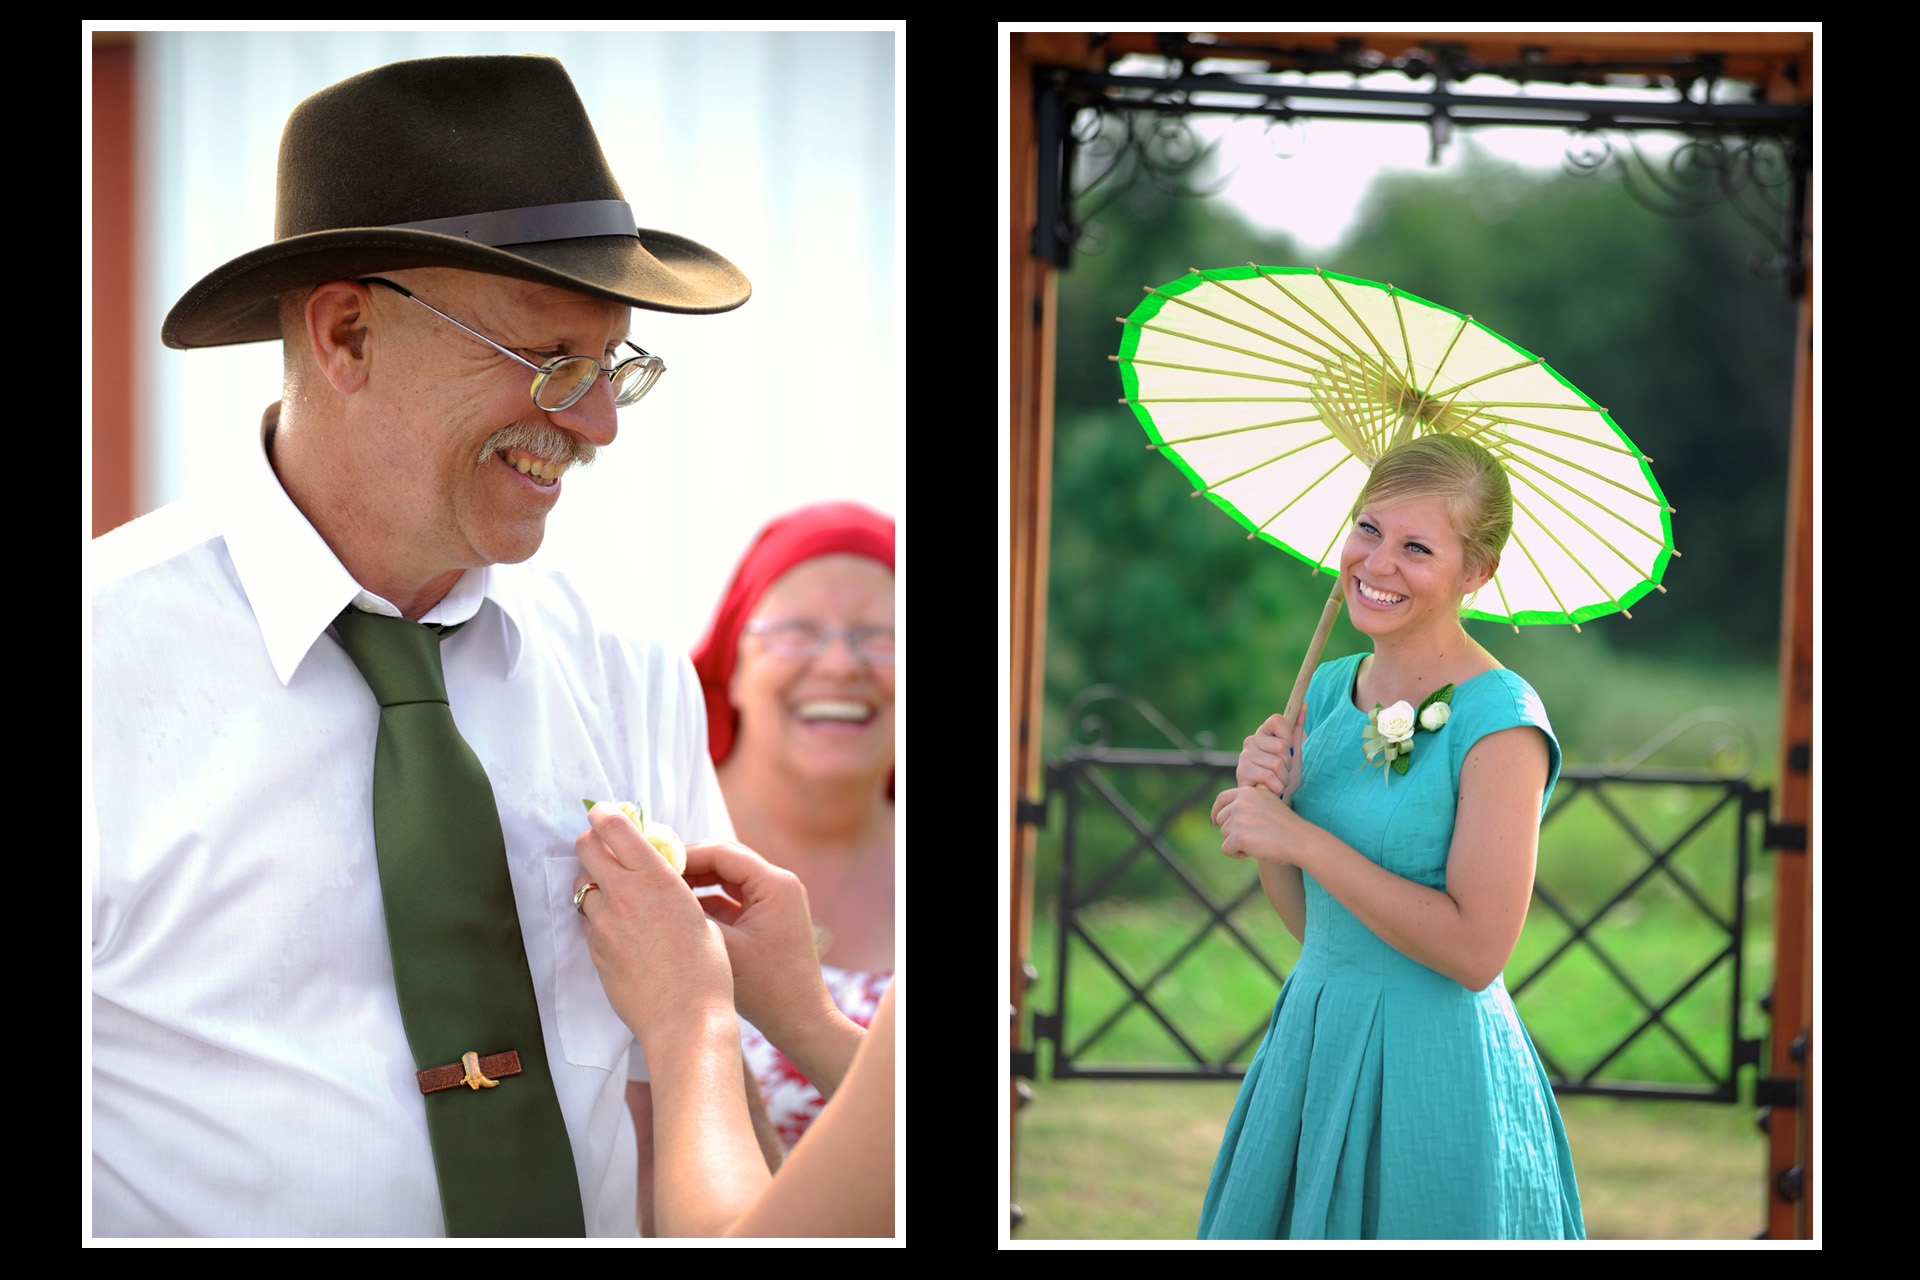 A farm wedding in Michigan photographer features a guest putting on the father of the groom's flower and the bridesmaid waiting in the summer heat for the beginning of the Michigan country wedding.